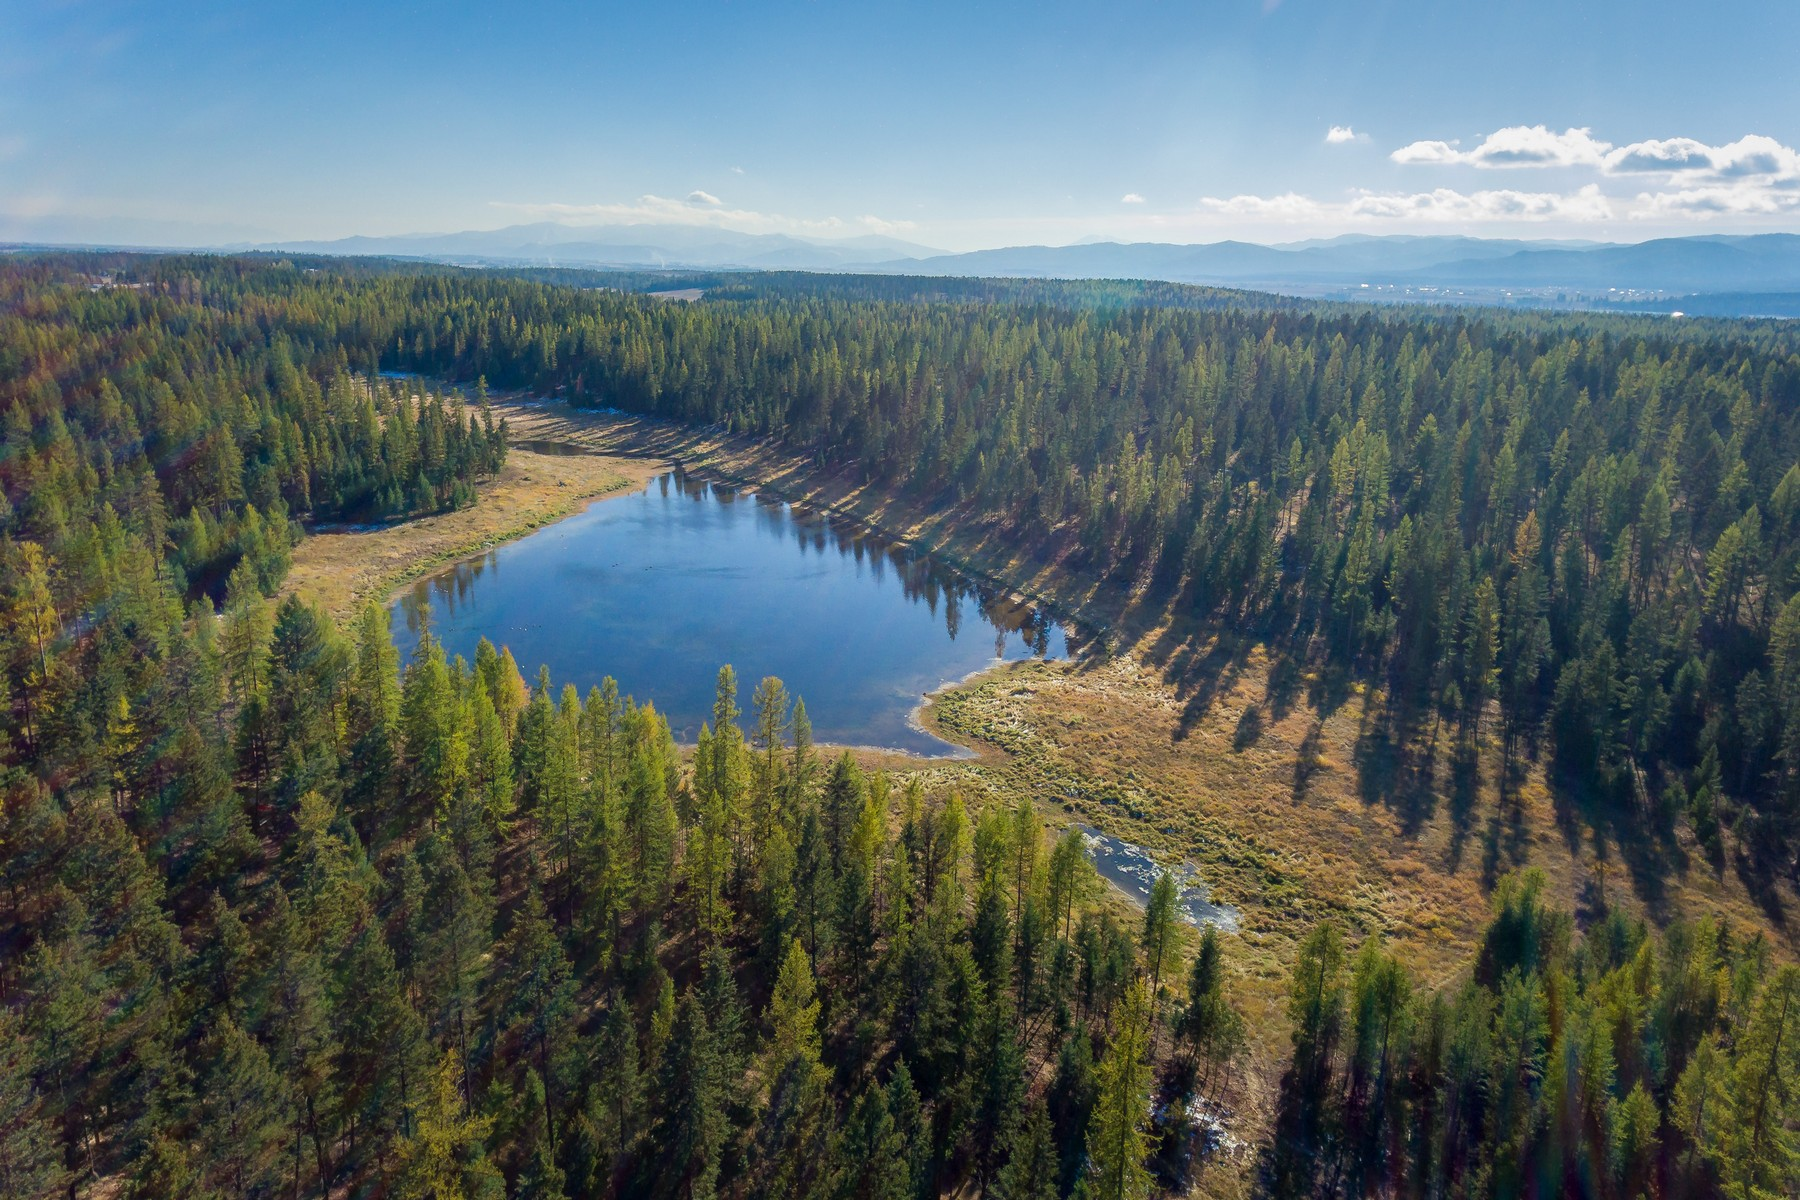 Land for Sale at 1131 Whitefish Village Dr , Whitefish, MT 59937 1131 Whitefish Village Dr Whitefish, Montana 59937 United States